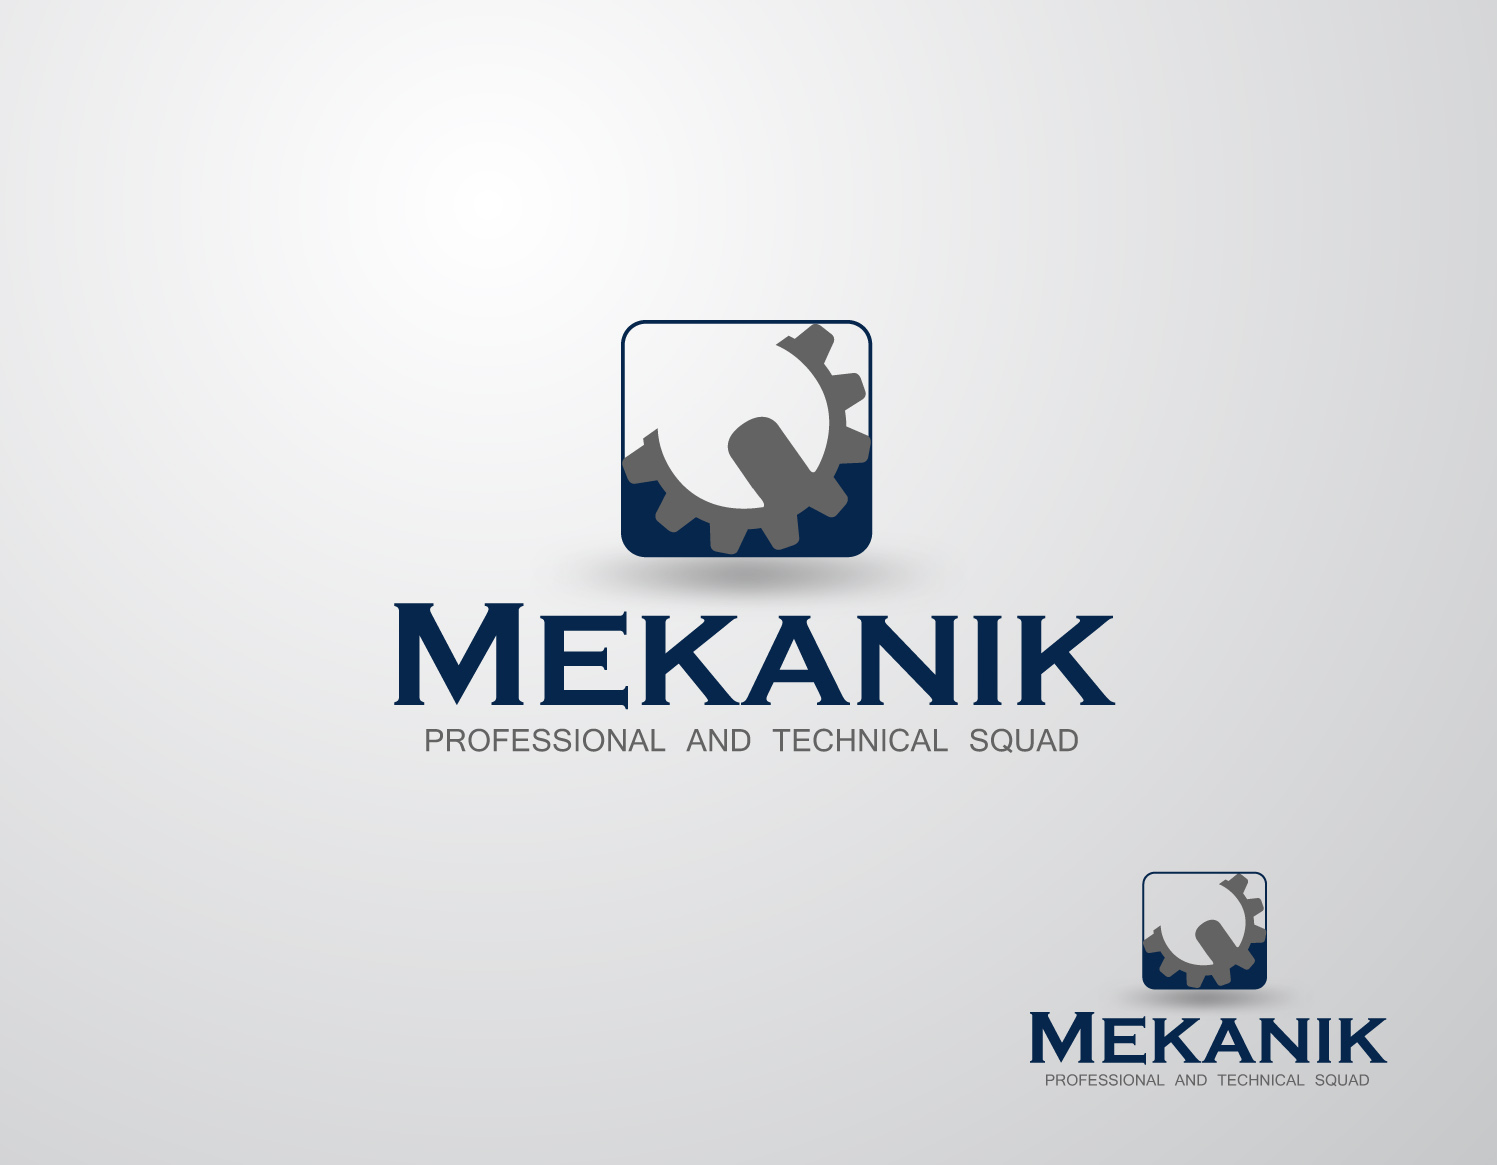 Logo Design by Mark Anthony Moreto Jordan - Entry No. 300 in the Logo Design Contest Creative Logo Design for MËKANIC - Professional and technical squad.